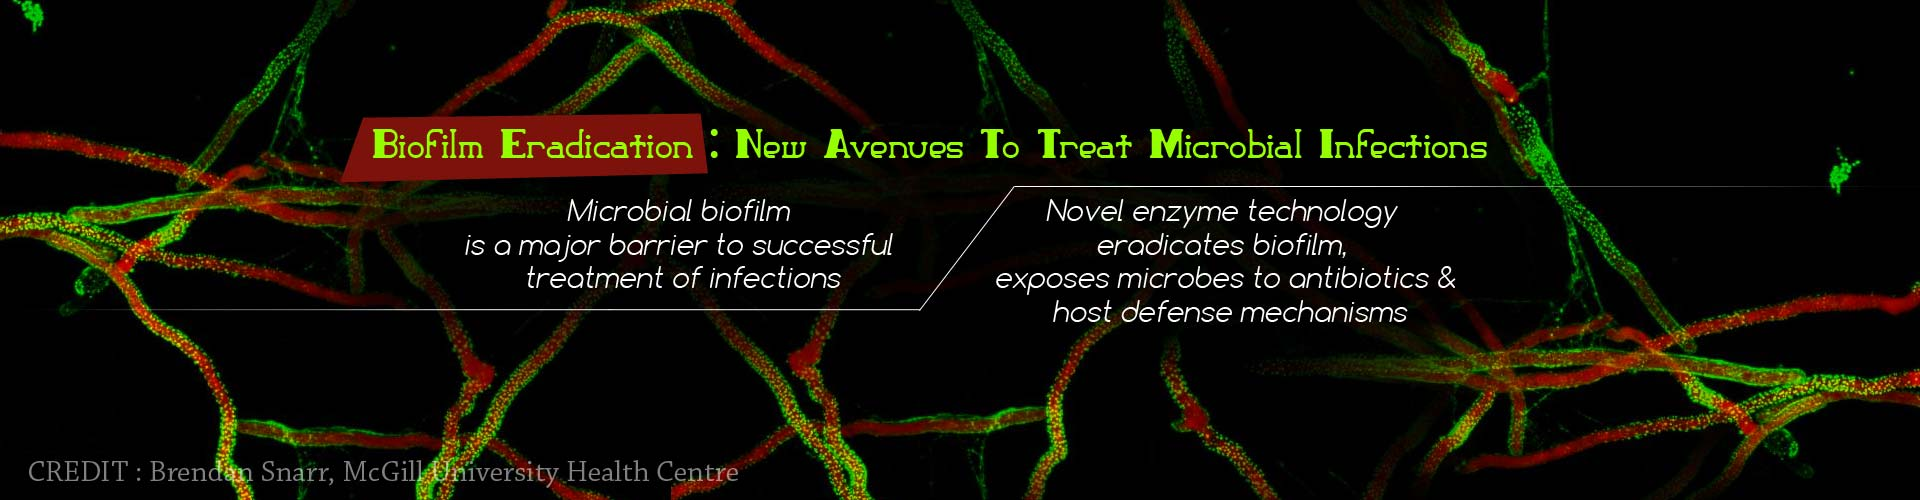 Addressing Microbial Biofilm to Combat Infections - The Way Forward